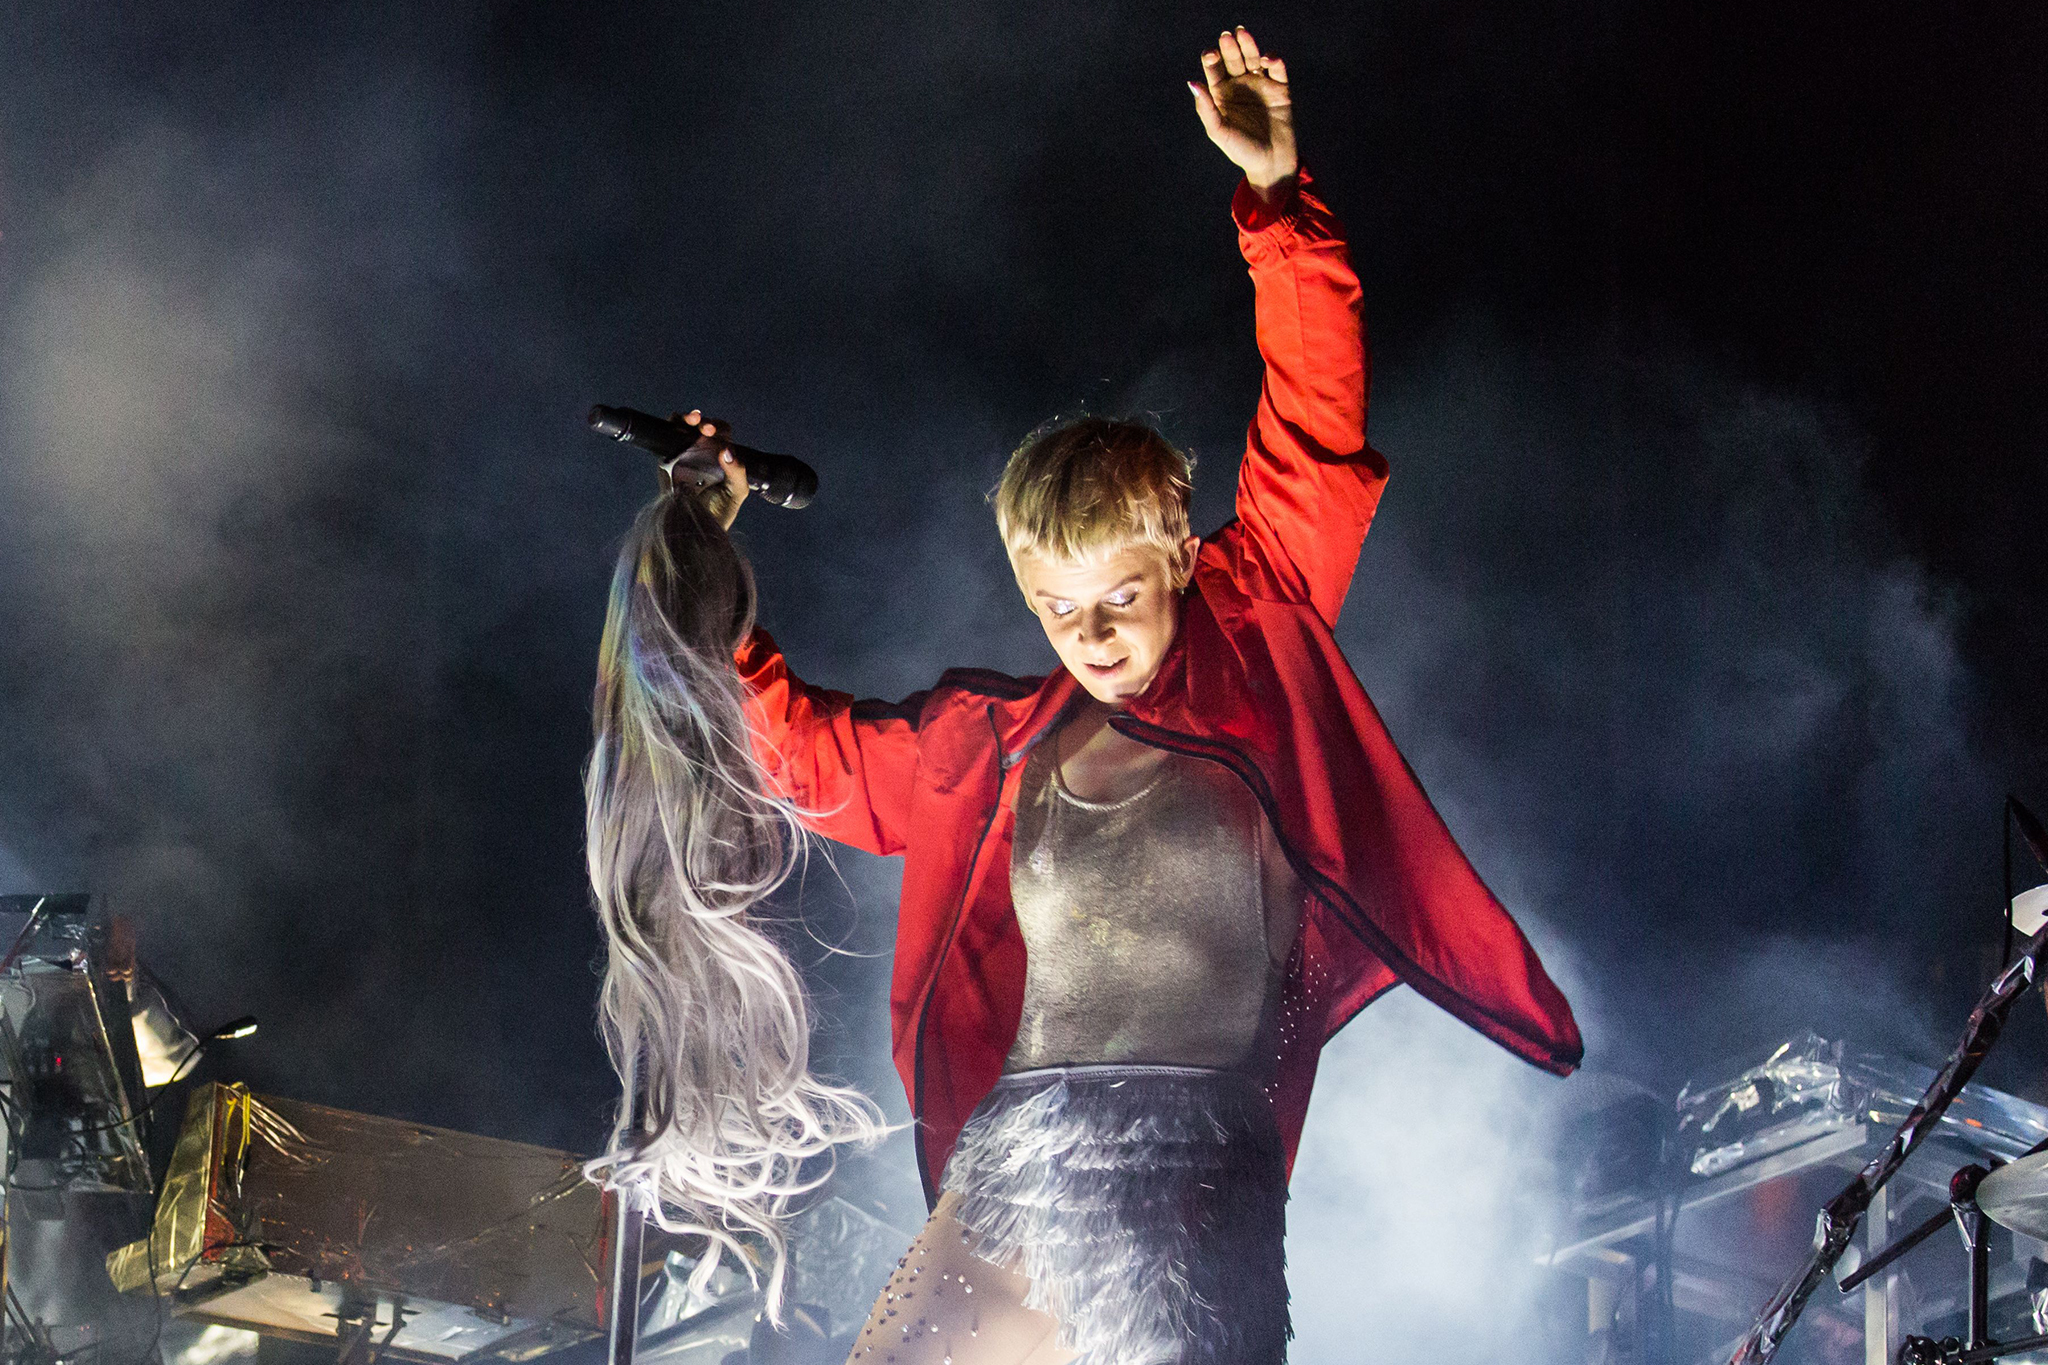 Robyn is returning to NYC to perform at Barclays Center this July